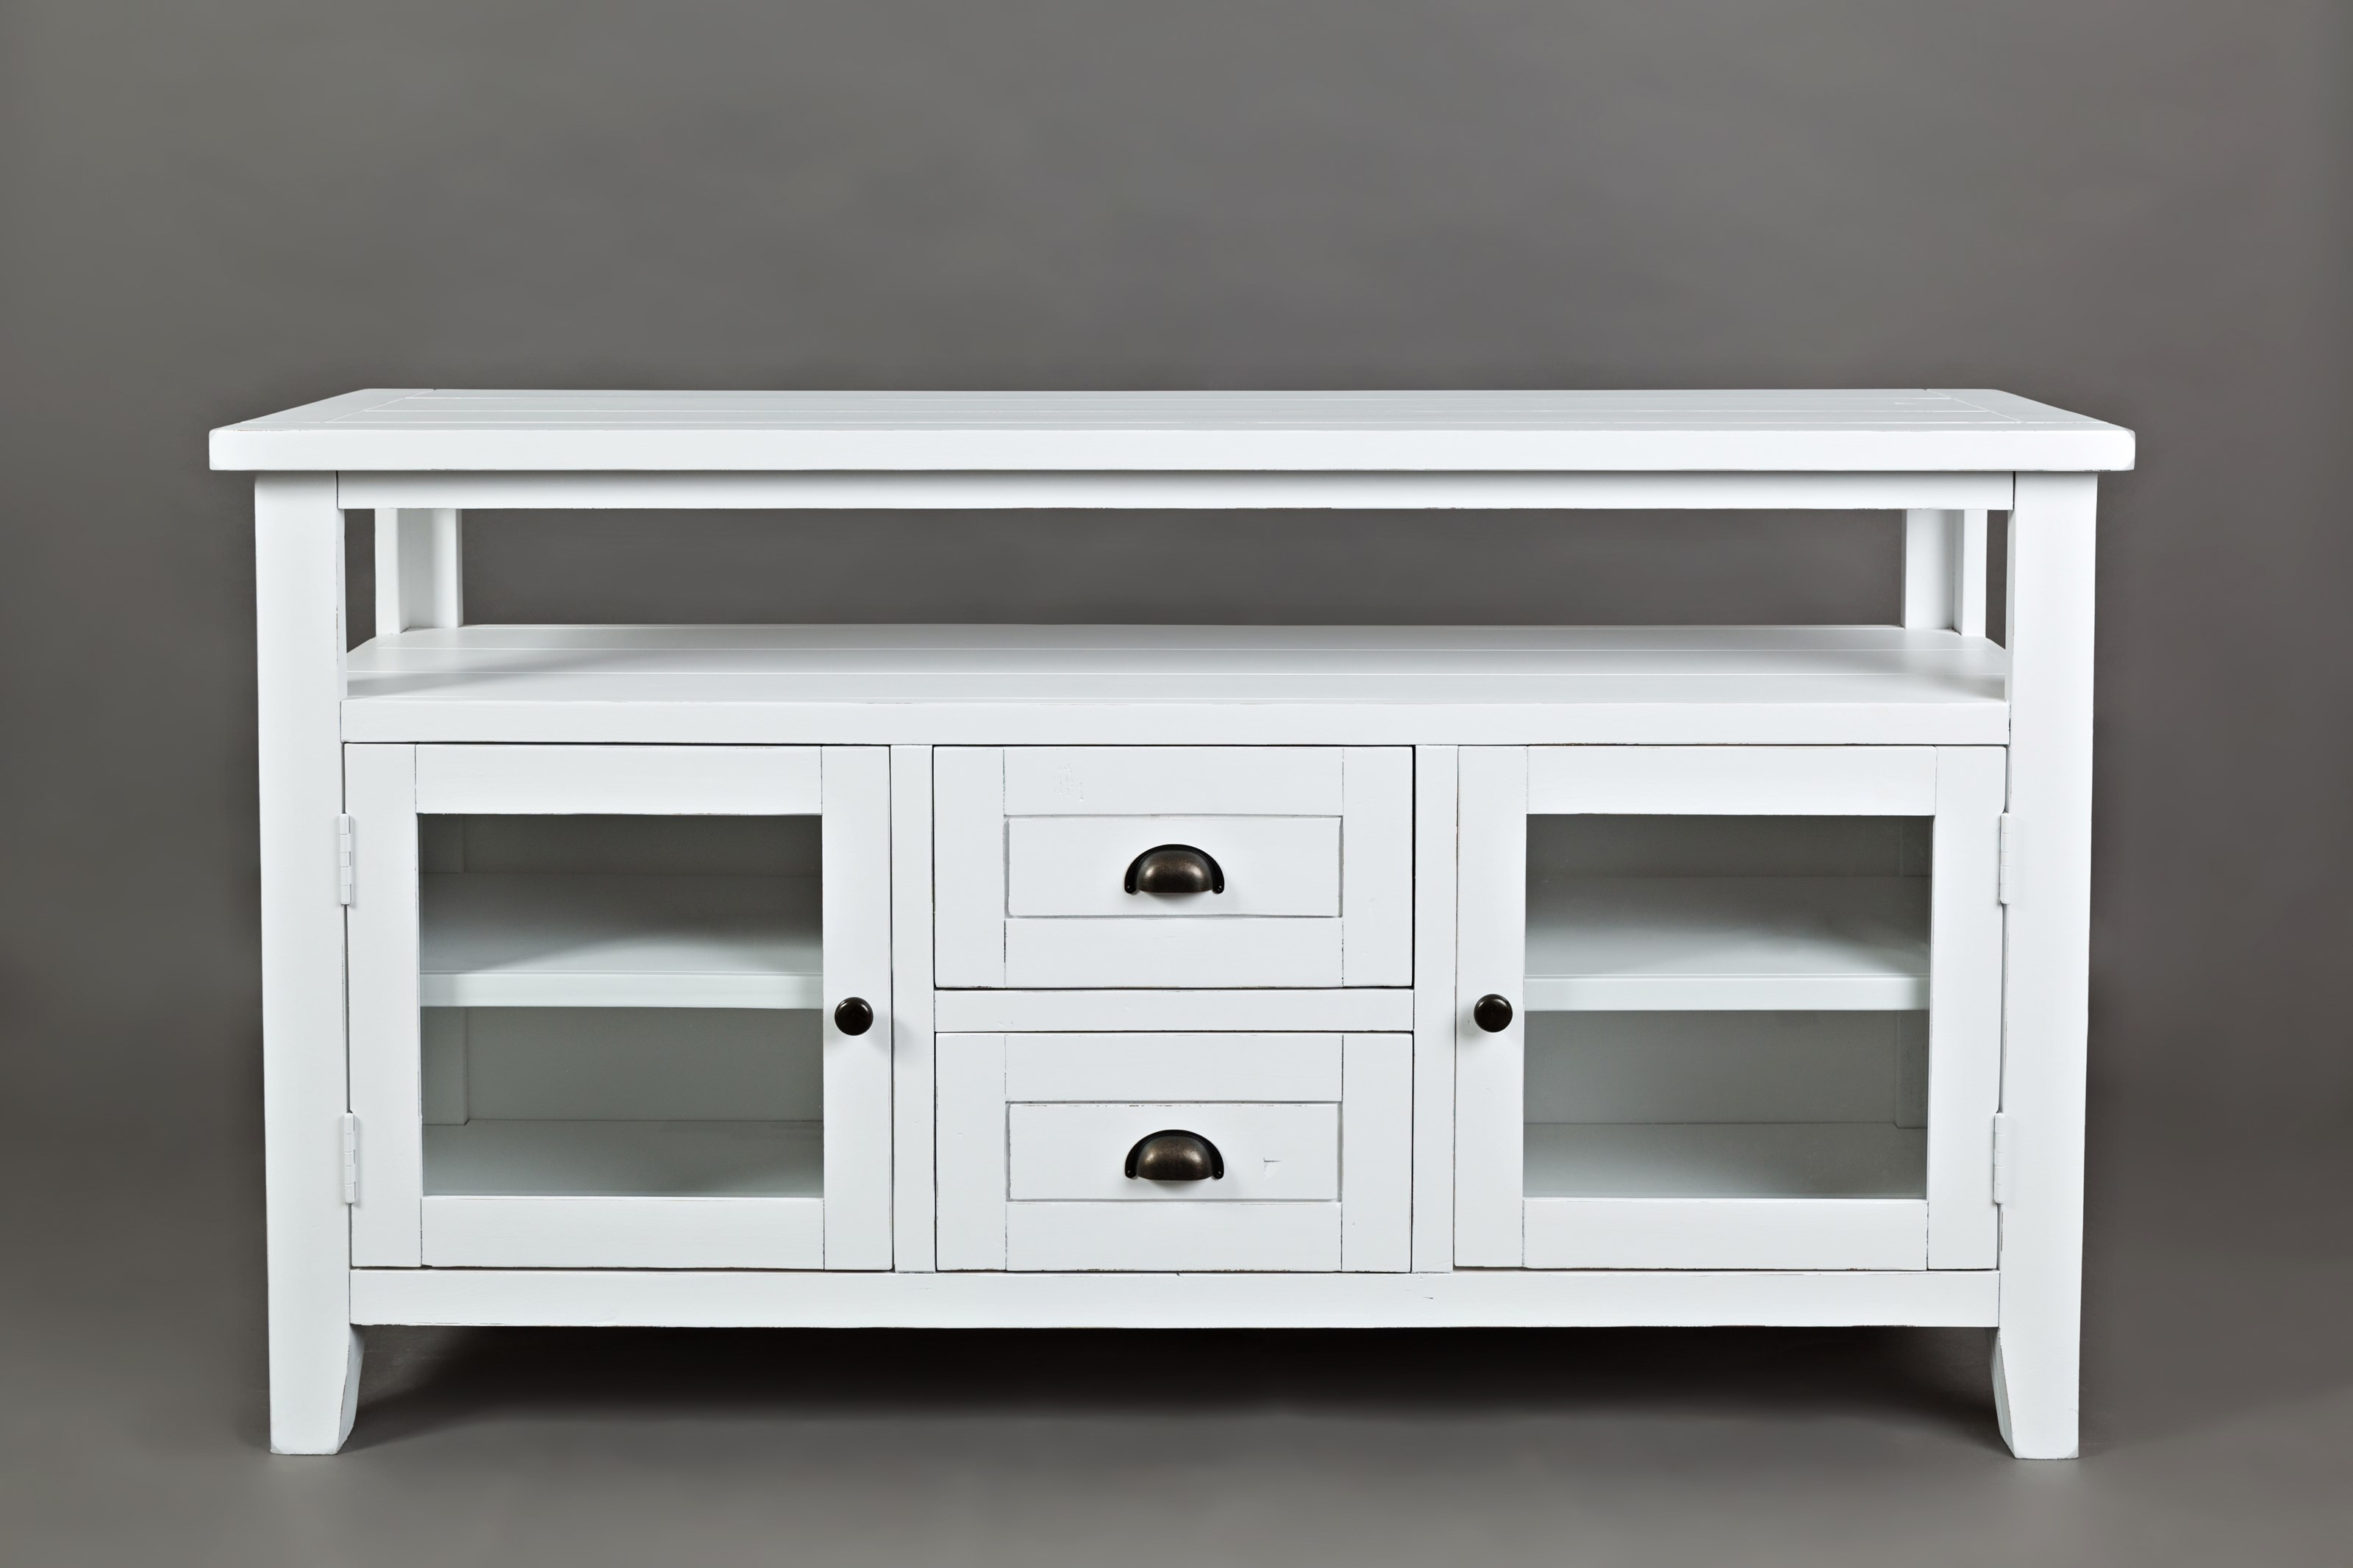 "Artisan's Craft 54"" Storage Console by Jofran at Home Furnishings Direct"